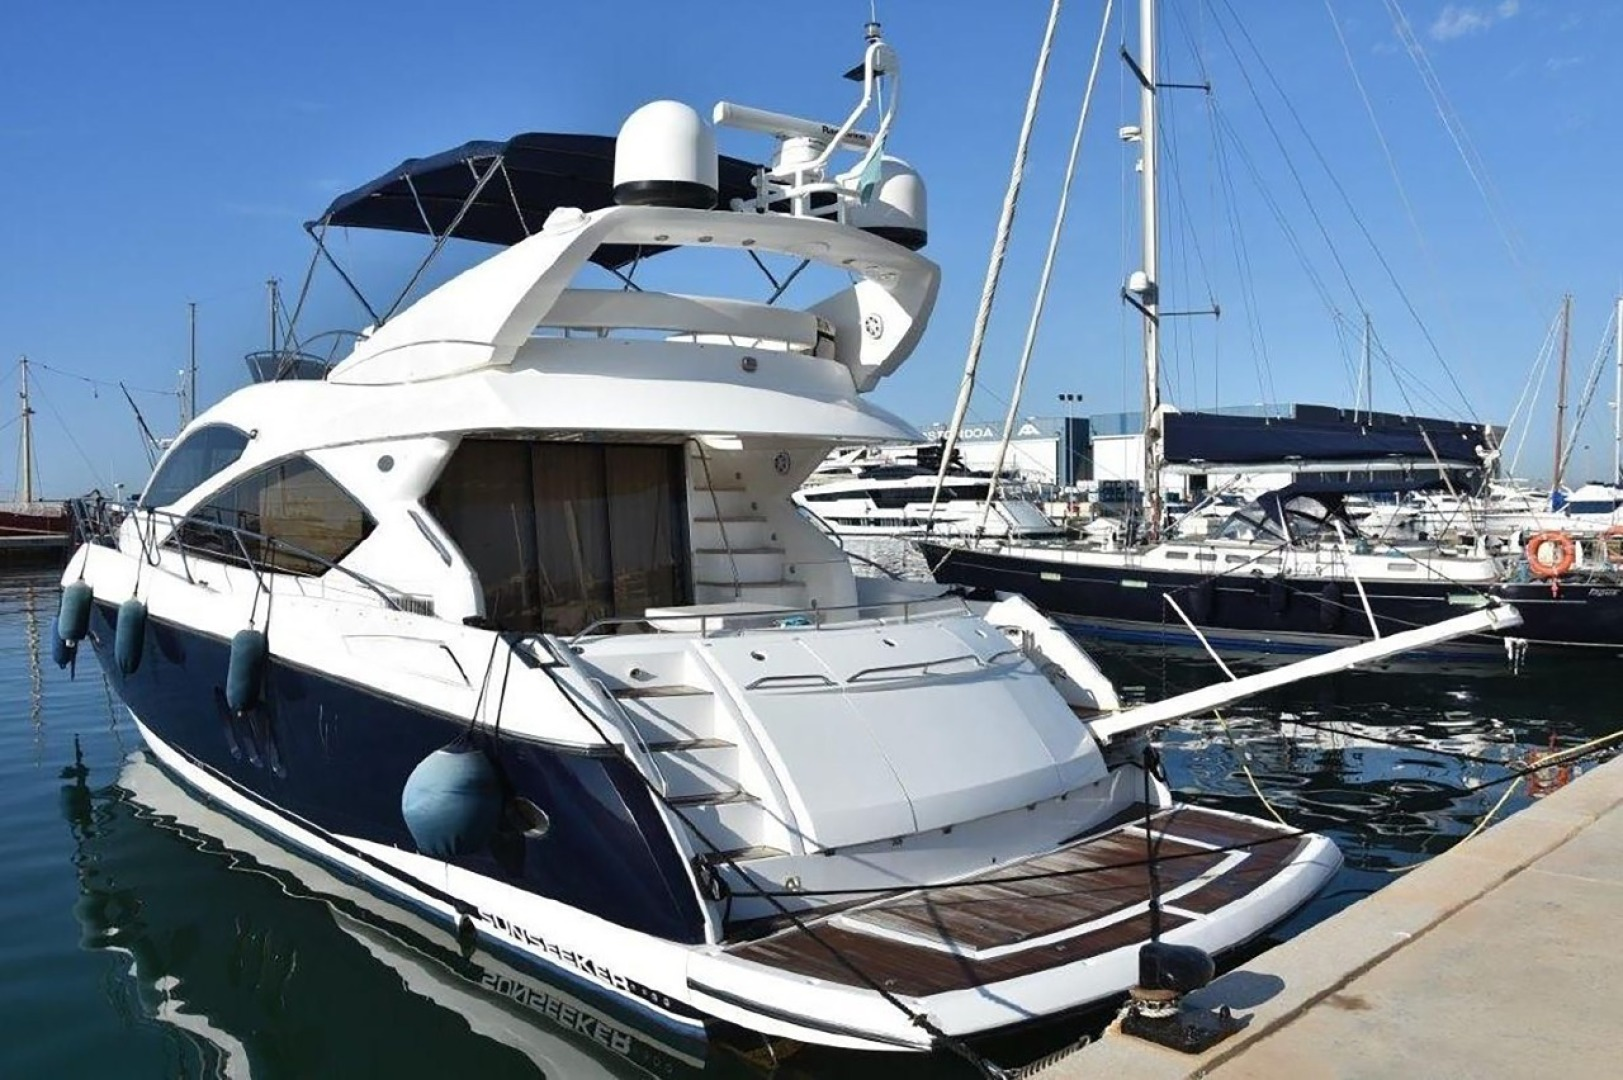 is a Sunseeker 60 Yacht For Sale in CANCUN-2006 SUNSEEKER 60 FOR SALE IN CANCUN -0